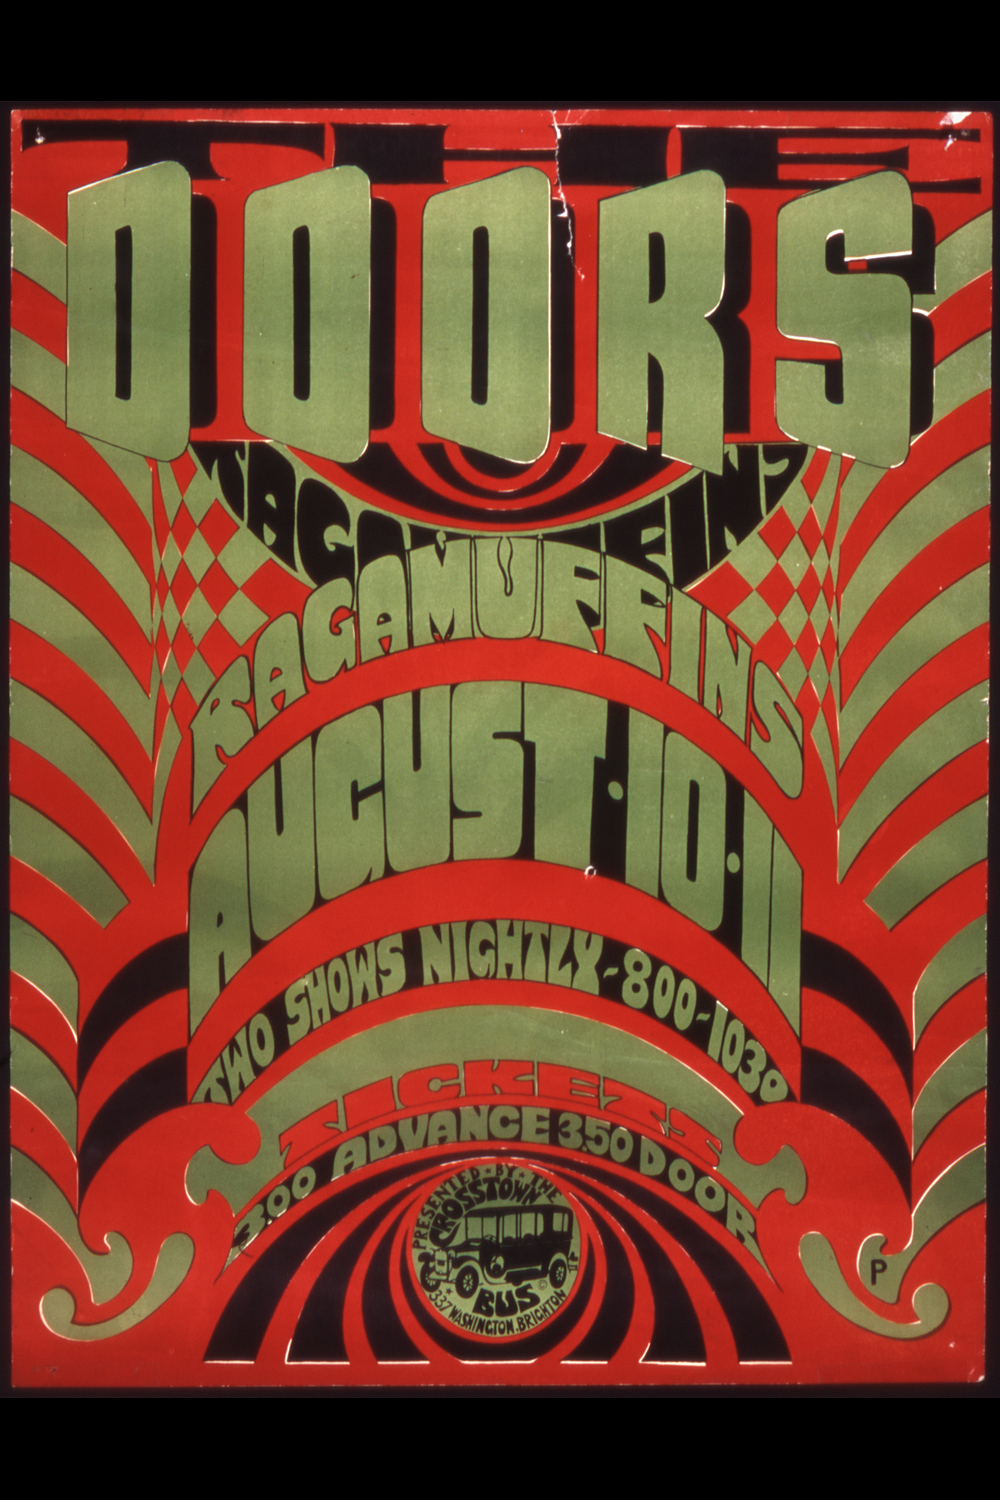 Concert Poster: The Doors and The Ragamuffins : doors poster - Pezcame.Com